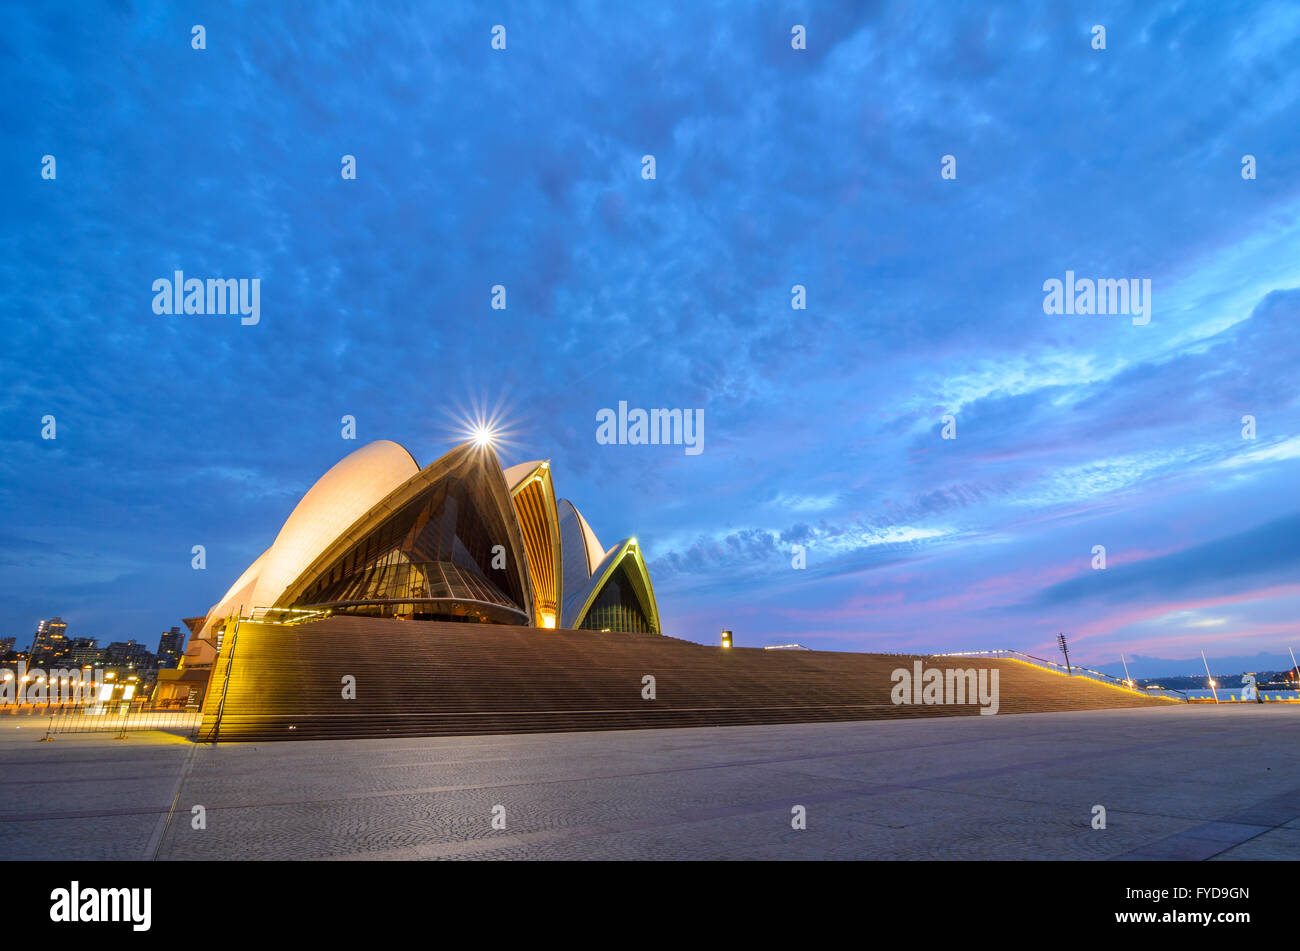 Dawn at Sydney Opera House - Stock Image